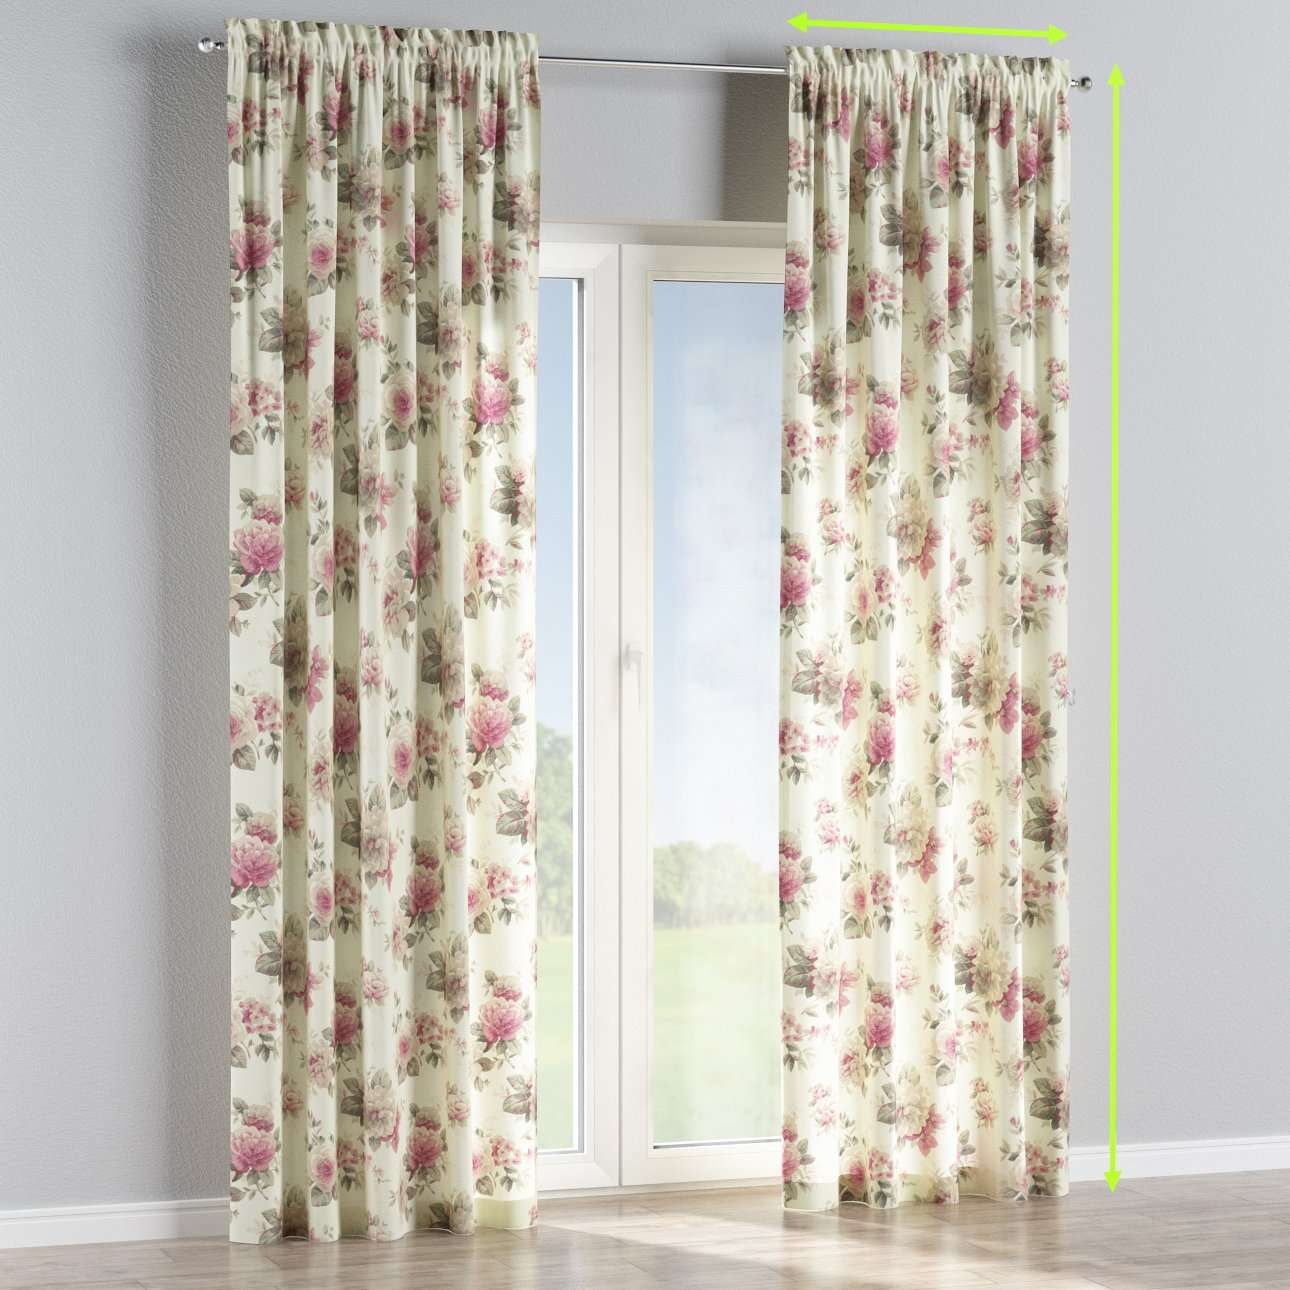 Slot and frill lined curtains in collection Mirella, fabric: 141-07